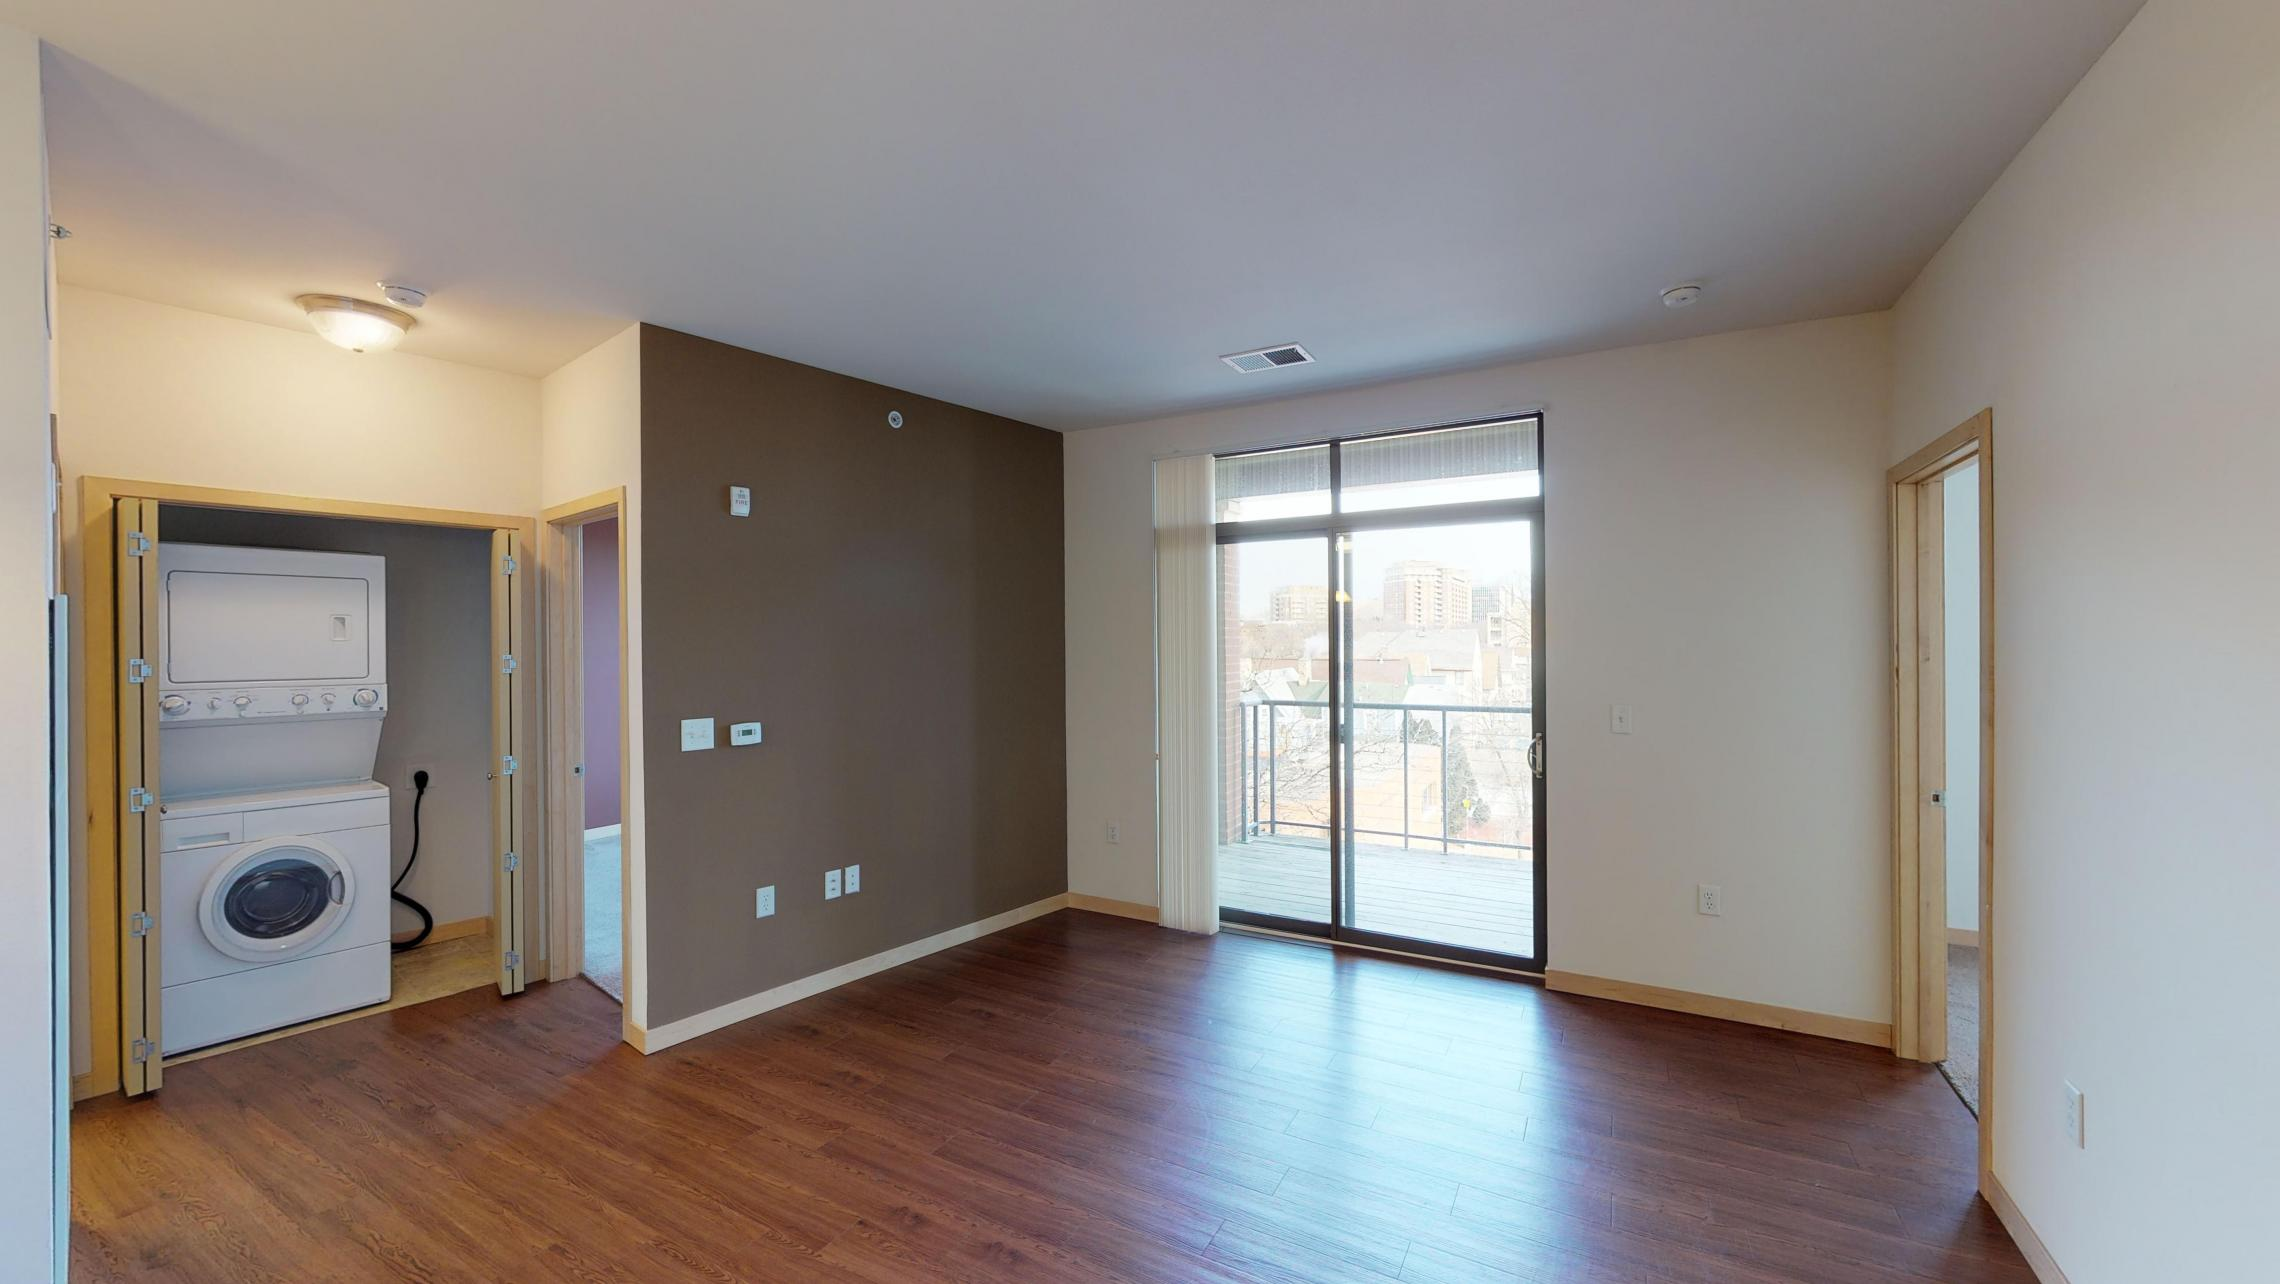 The-Depot-Apartments-Downtown-Madison-Lifestyle-Large-Closet-Bike-Storage-Washington-Ave-Style-Design-Balcony-Apartment-1-415-One-Bedroom-Den